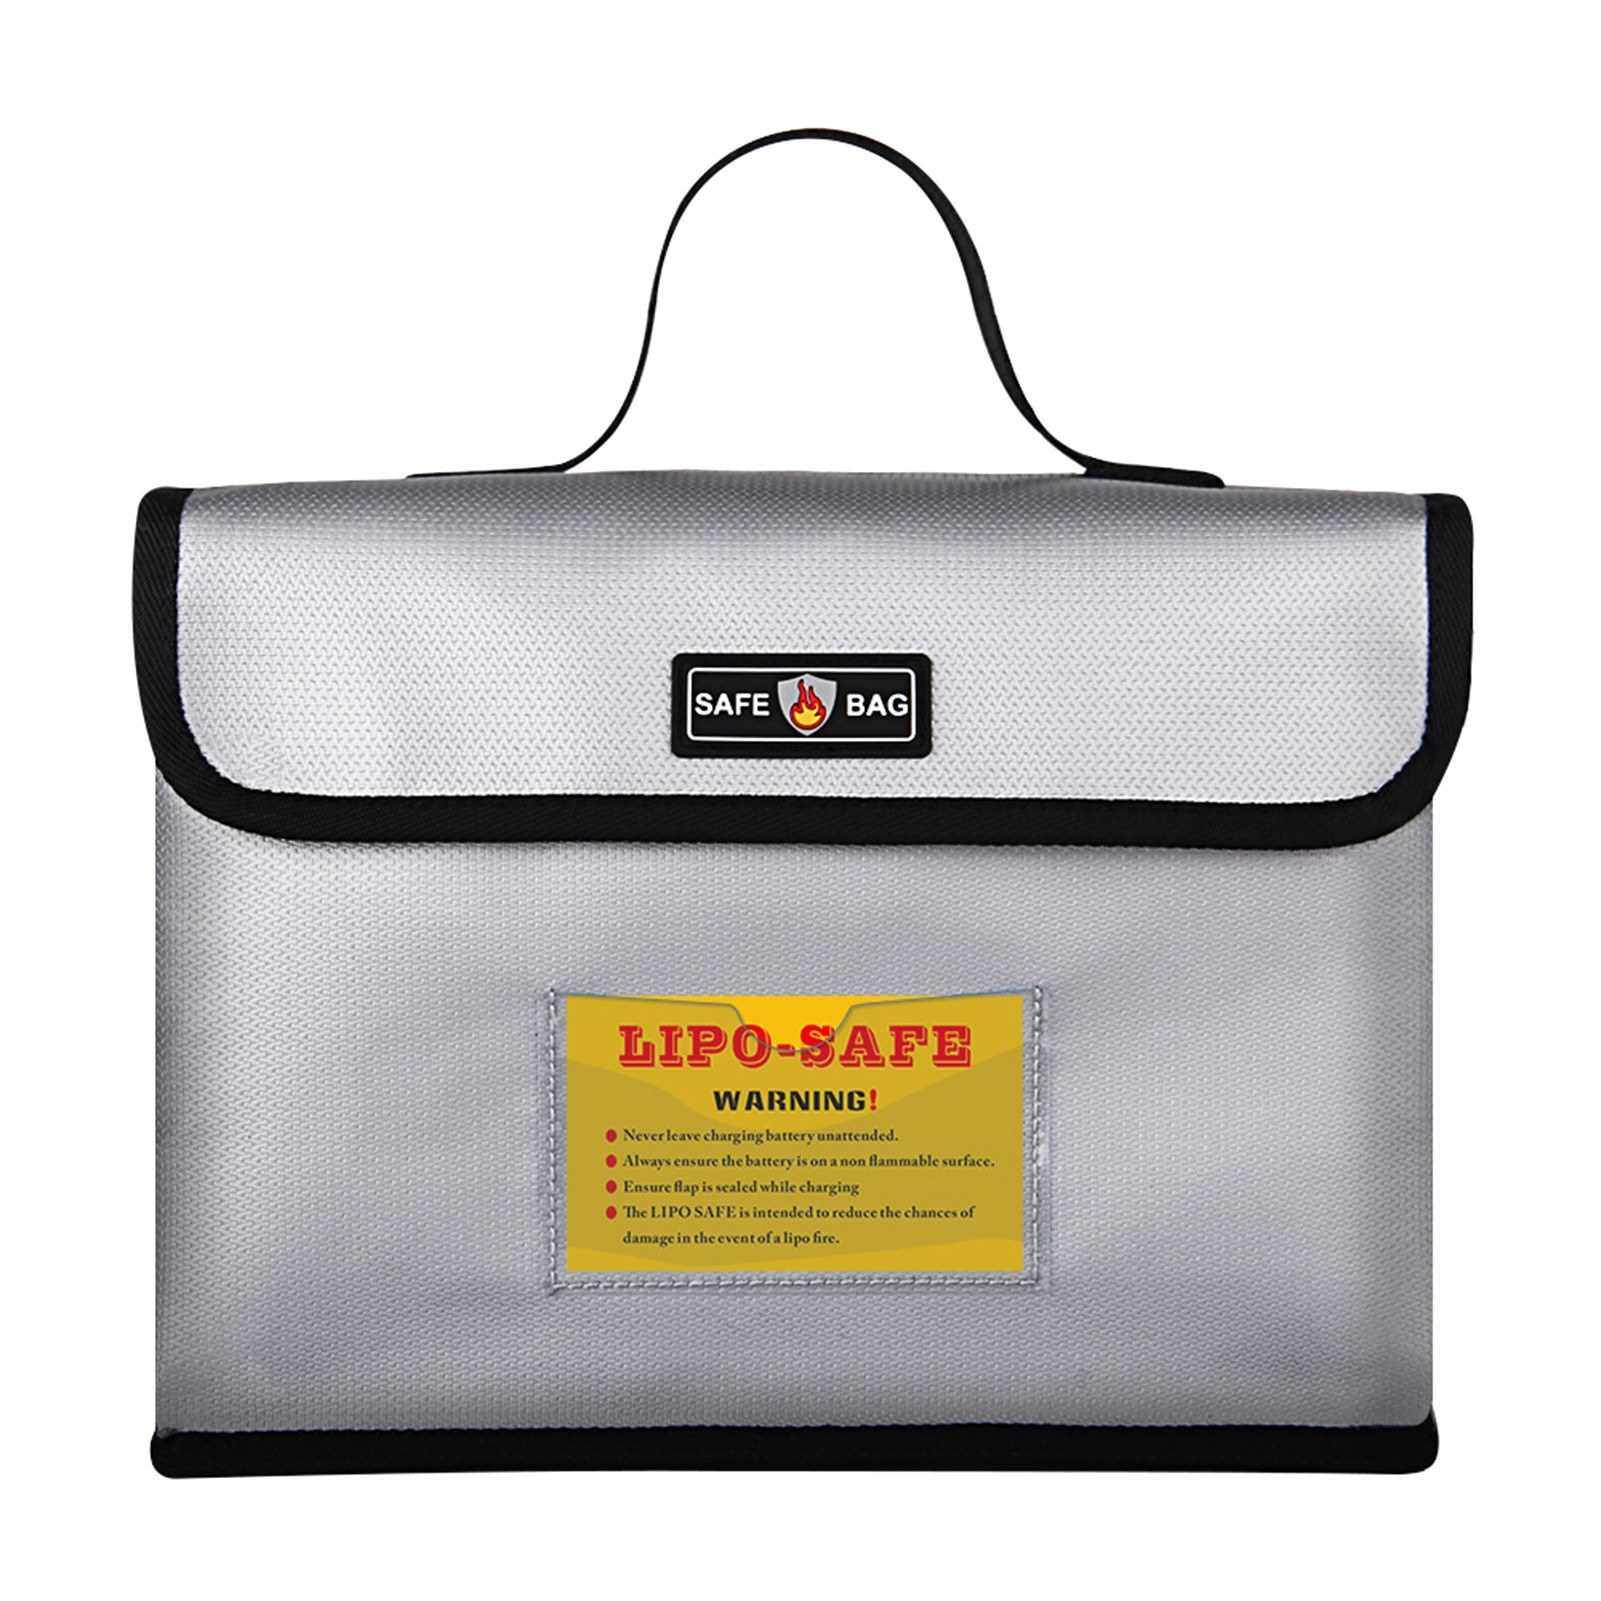 Portable Fireproof Explosionproof Lipo Battery Guard Safe Bag Large Storage Space for Battery Storage and Charging with Double Metal Zipper Case Pouch, 260*130*190mm (Standard)